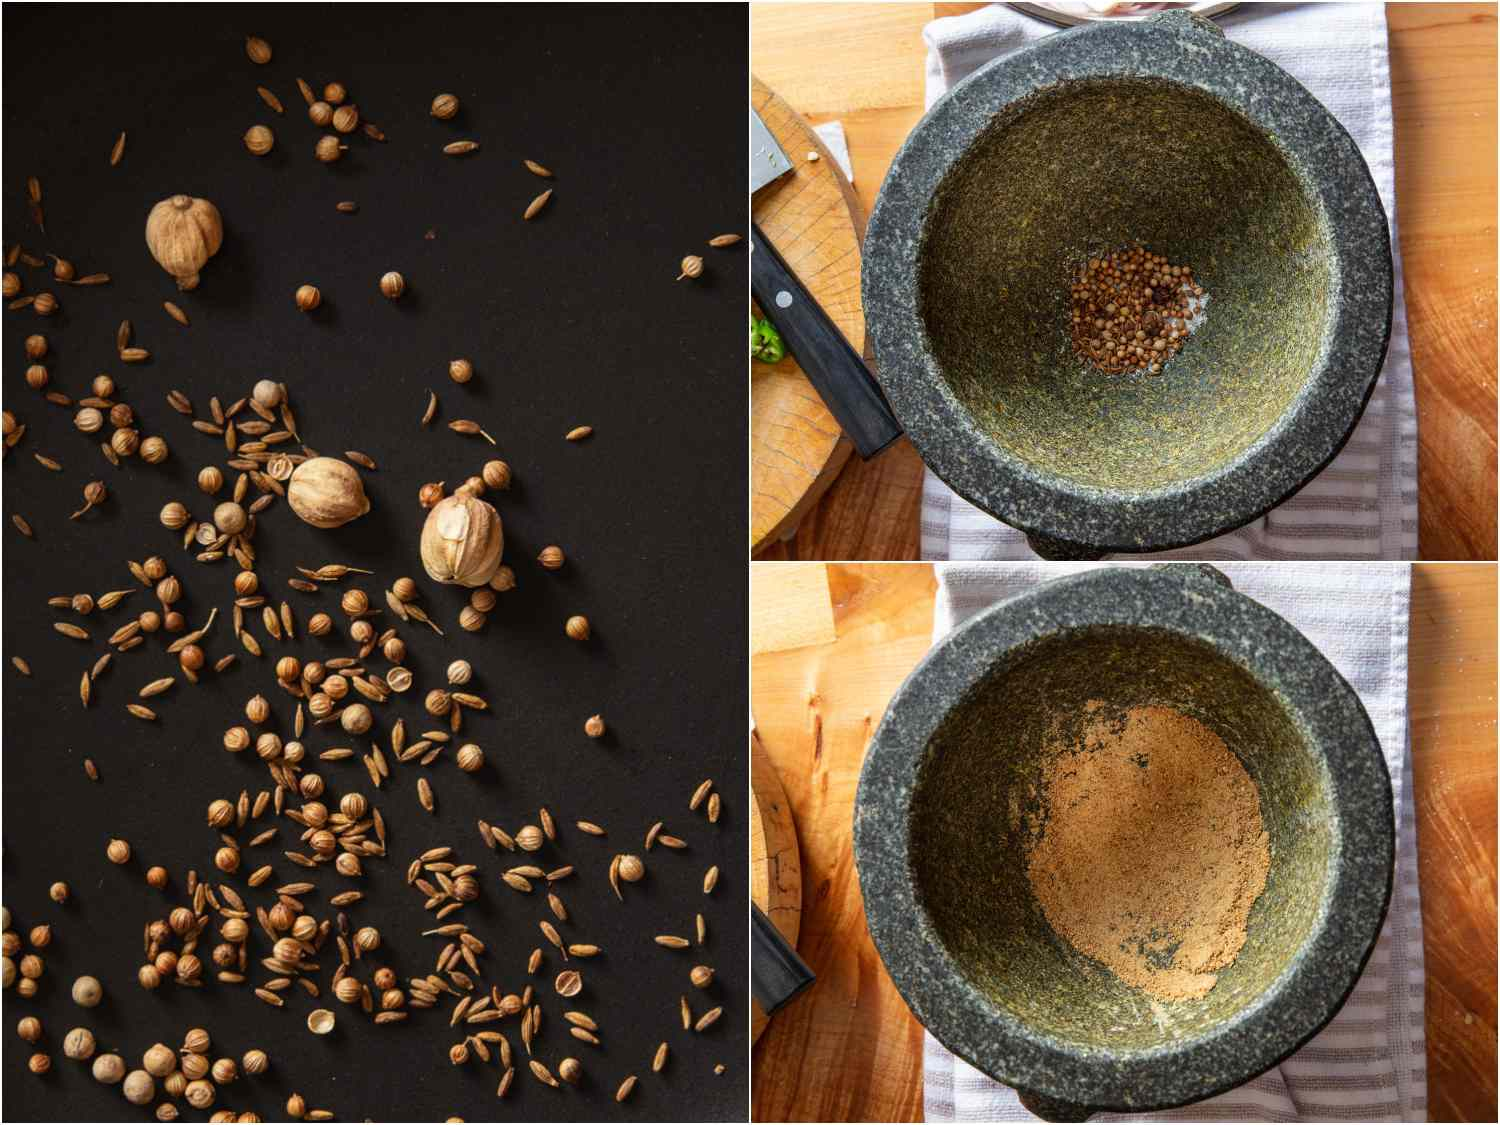 collage: toasting spices; toasted spices in mortar; pounded spices in mortar